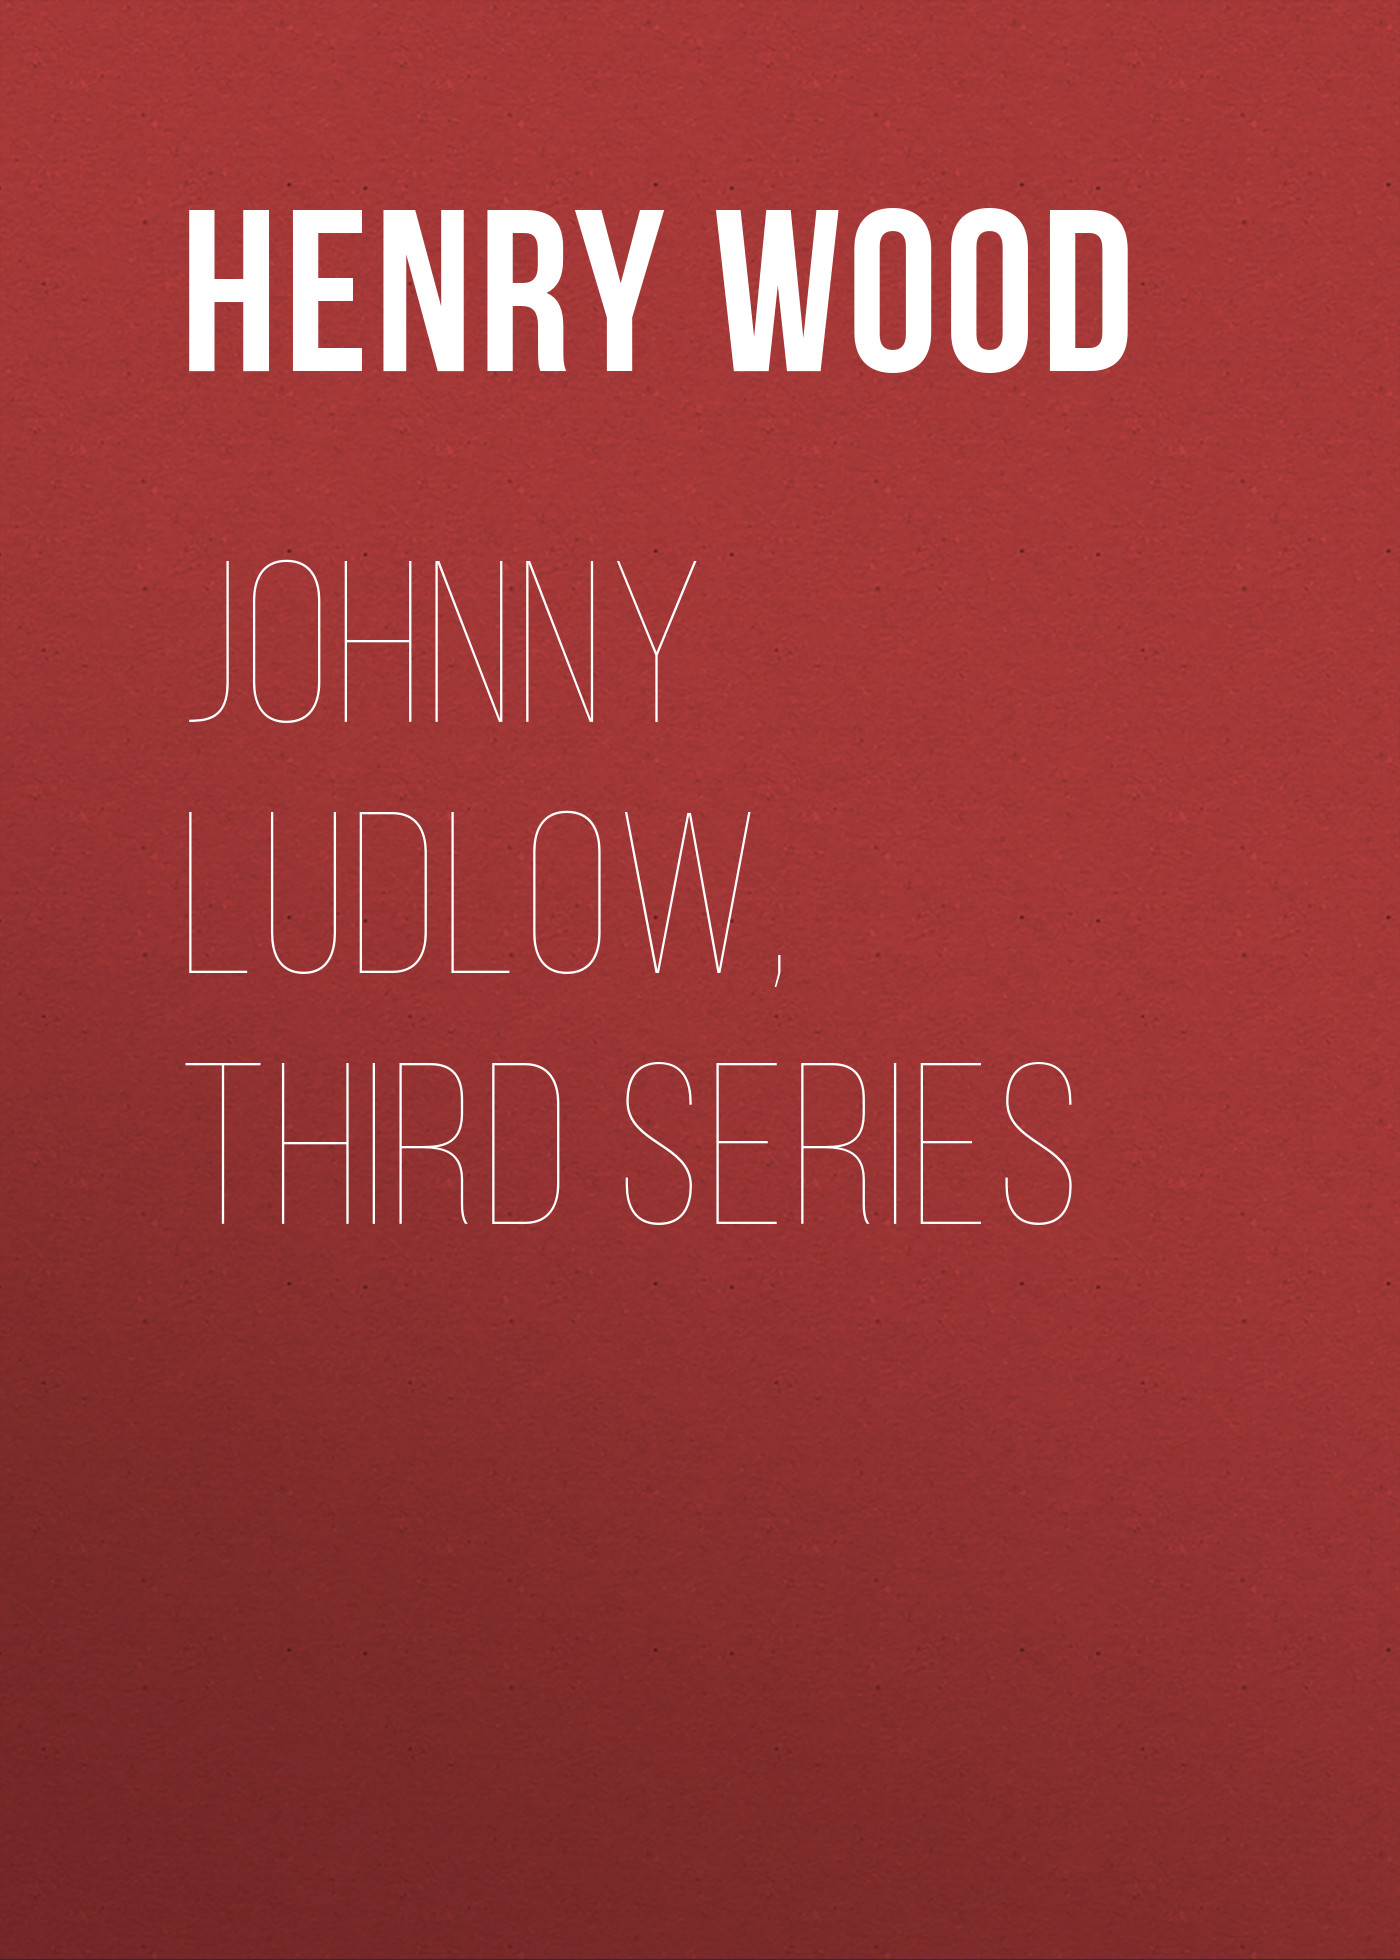 Henry Wood Johnny Ludlow, Third Series henry wood victor serenus